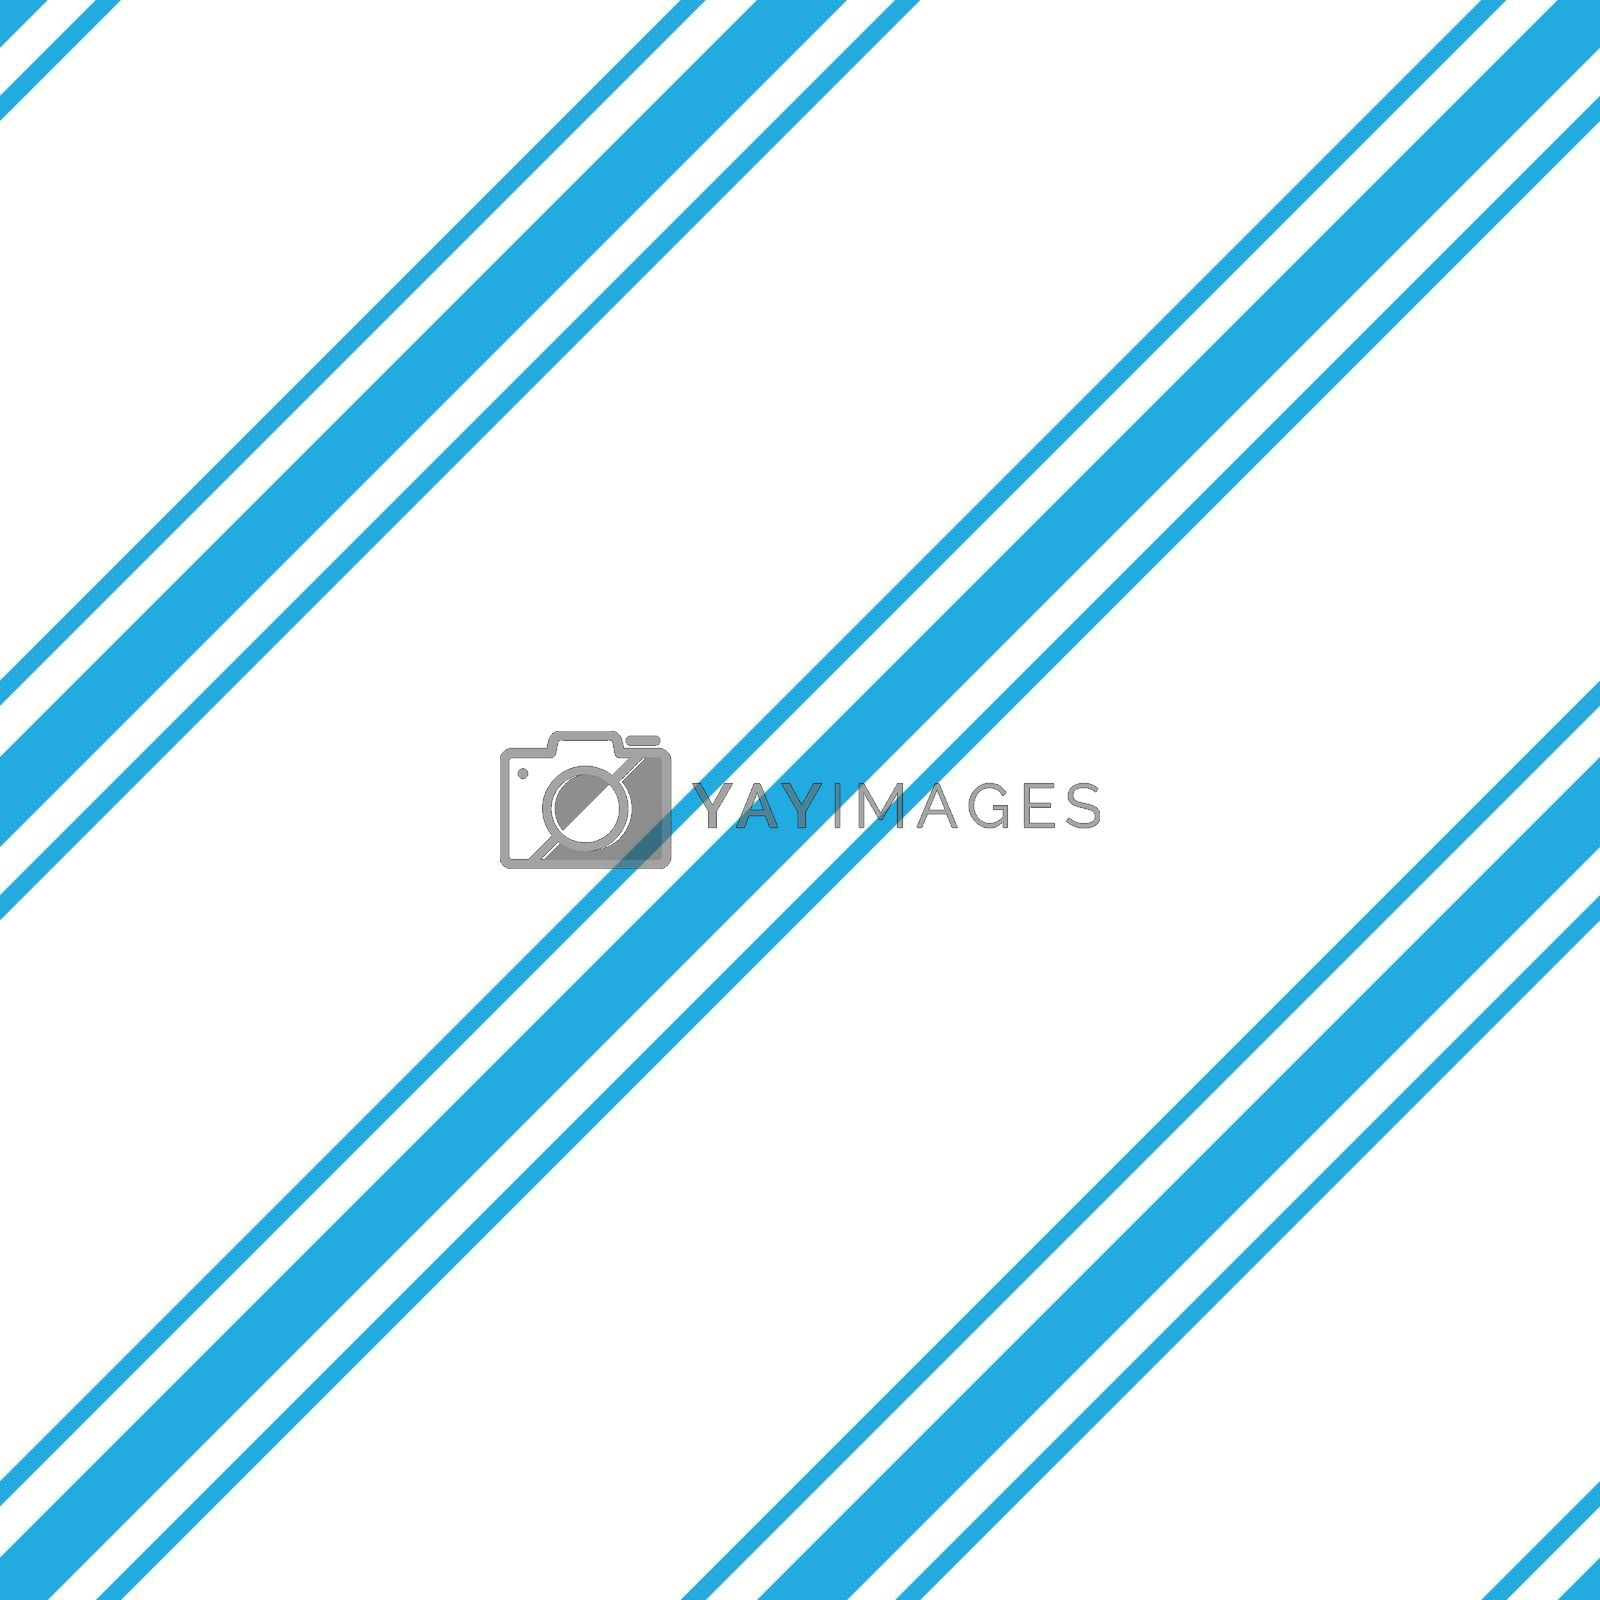 Seamless vector simple wallpaper. The diagonal blue stripes on a white background